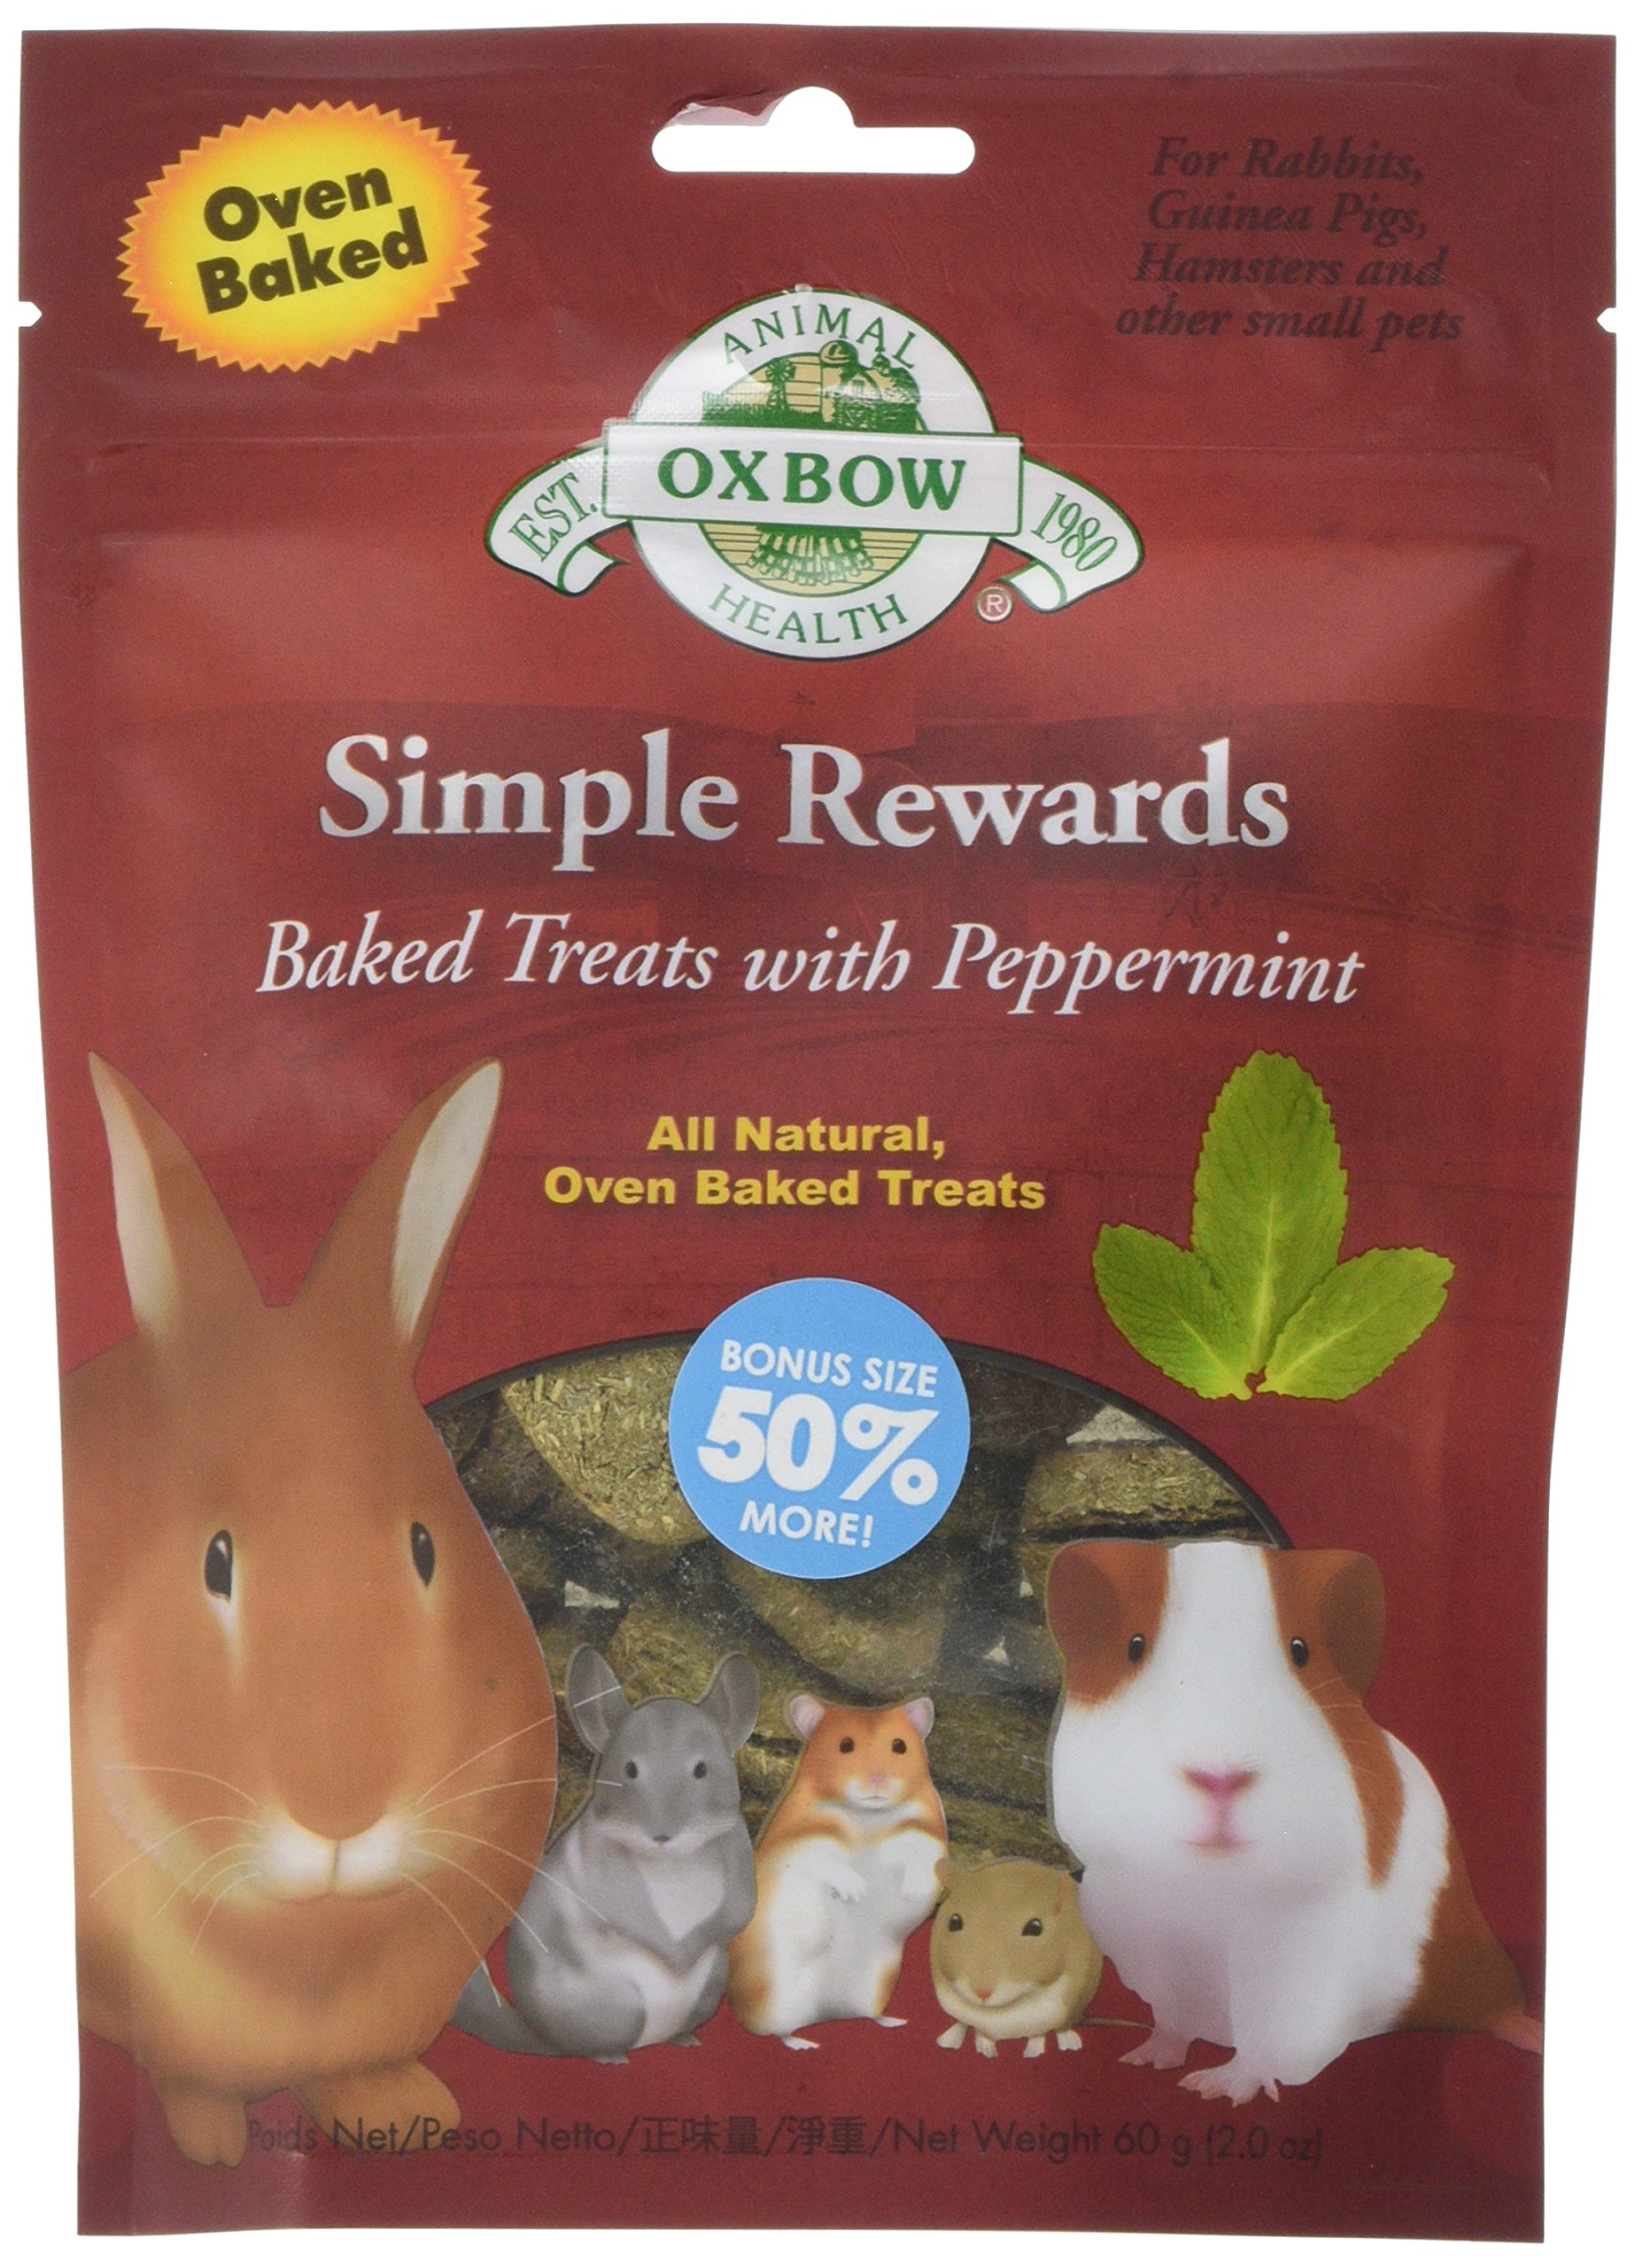 Oxbow Peppermint Simple Rewards Baked Treats